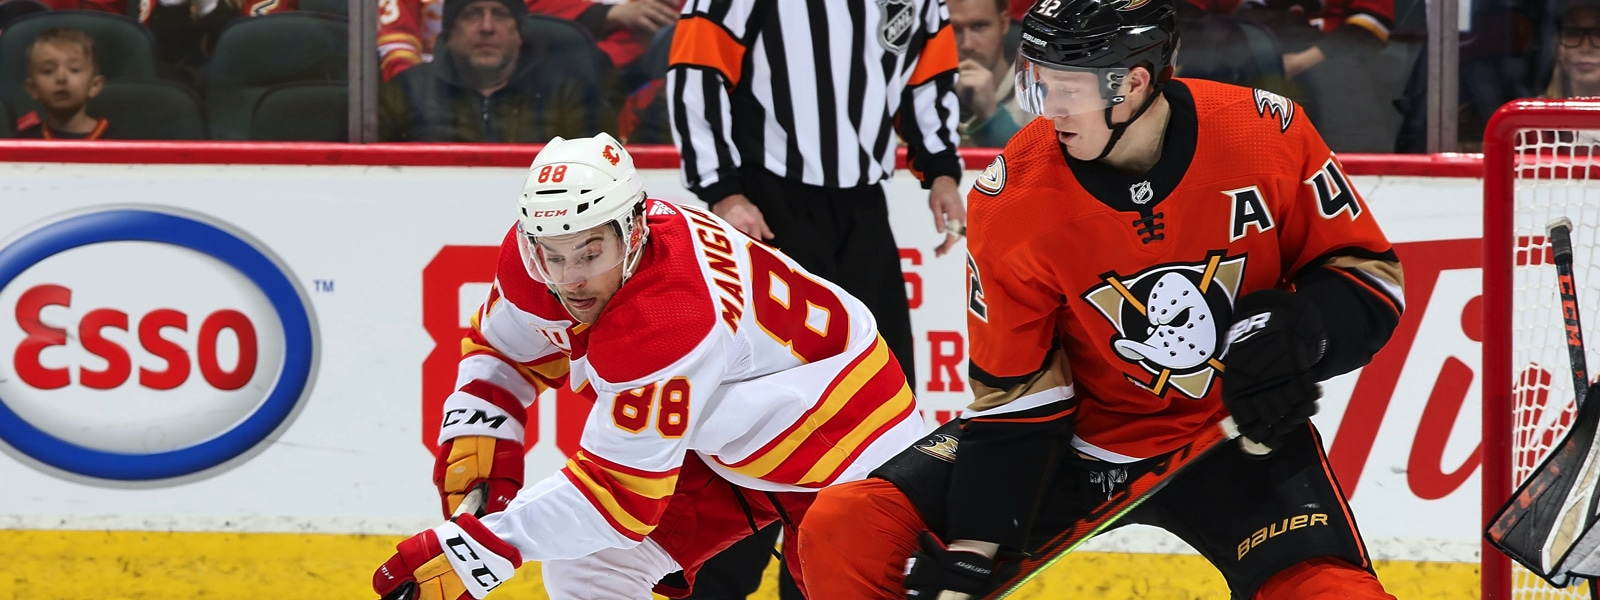 Flames Unfiltered – Episode 42 – Buyers or Sellers? What is the Smart Choice | Featuring Blake Friars of the THE DEBATE Hockey Podcast